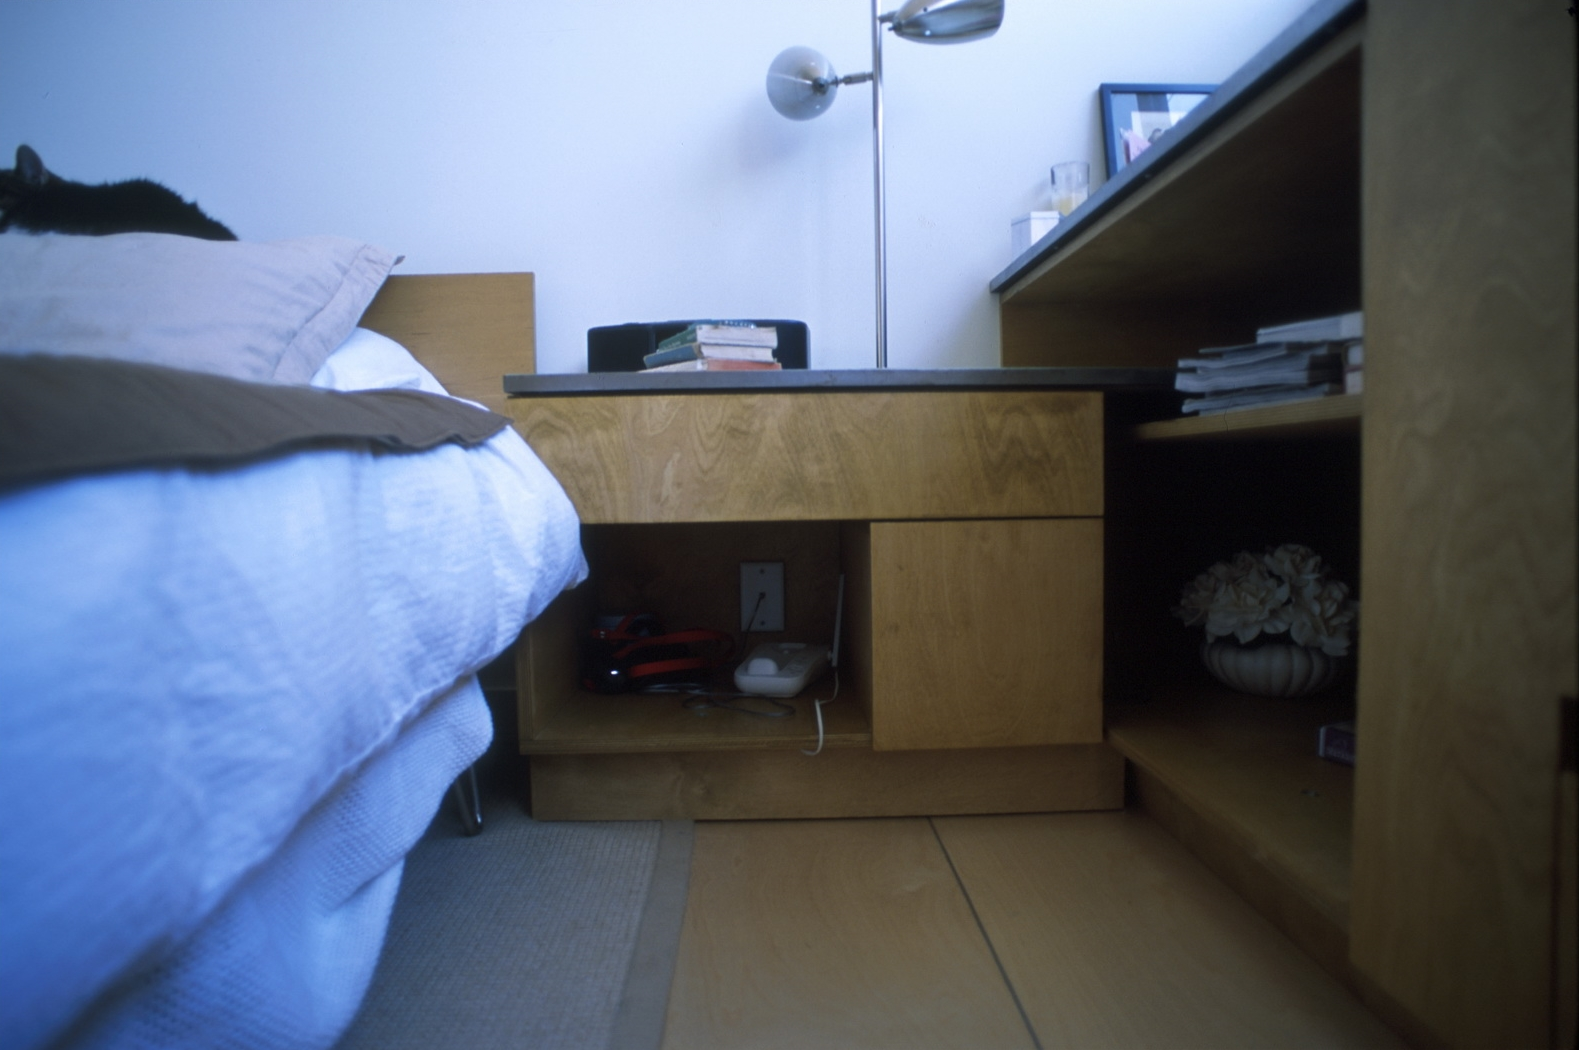 A nightstand is provided as the terminus of the installation.